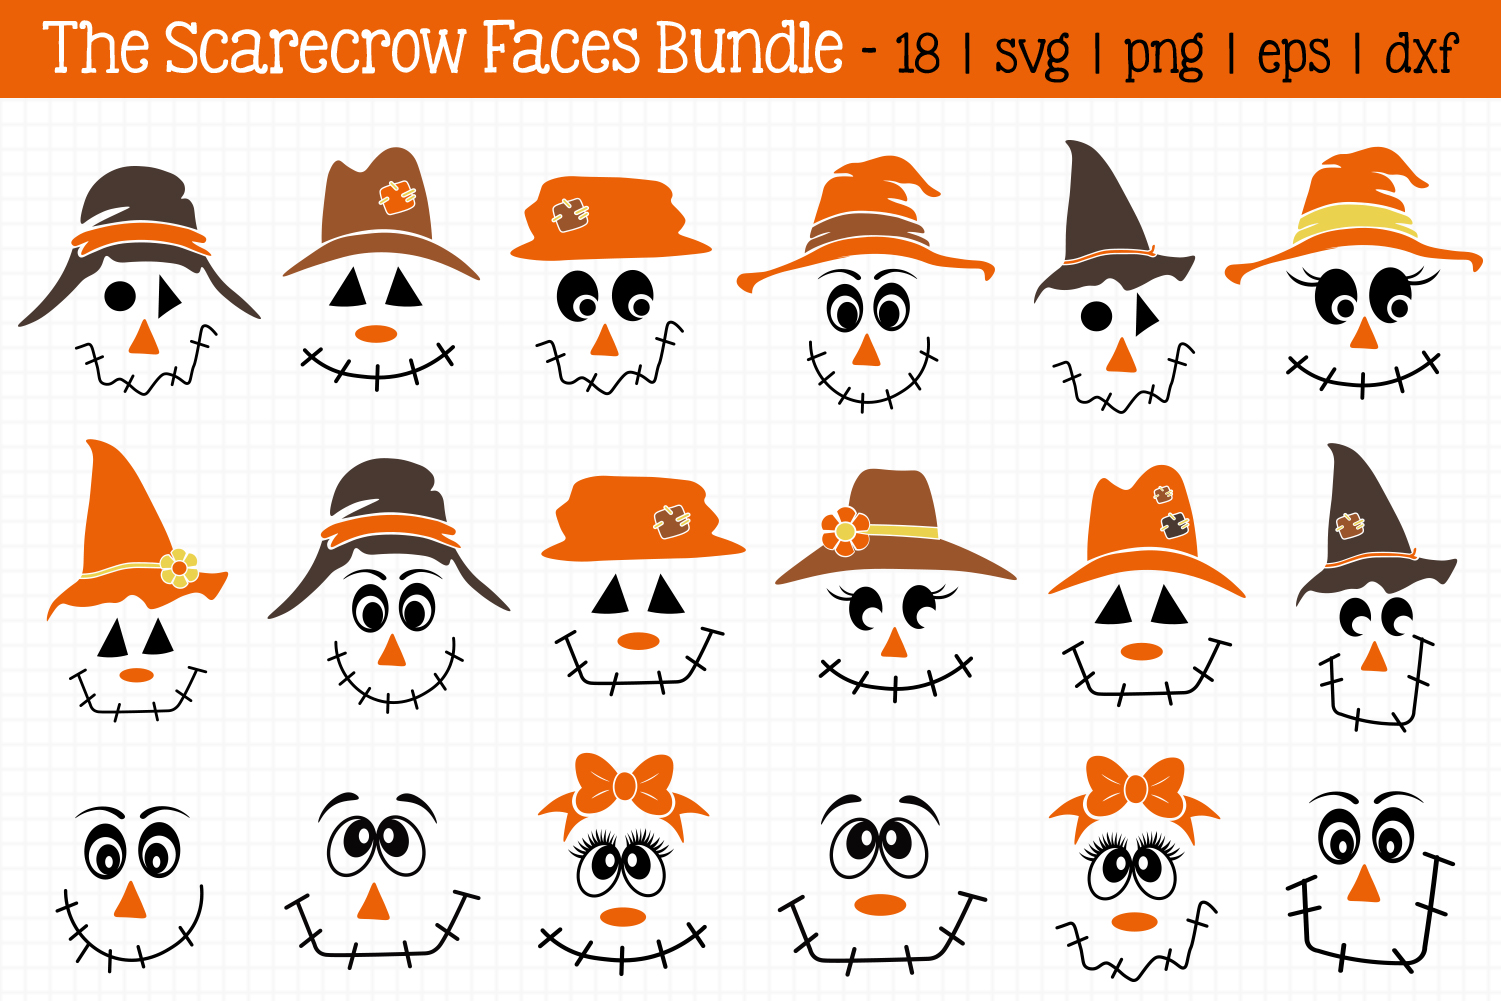 Scarecrow Faces Bundle Graphic By All About Svg Creative Fabrica